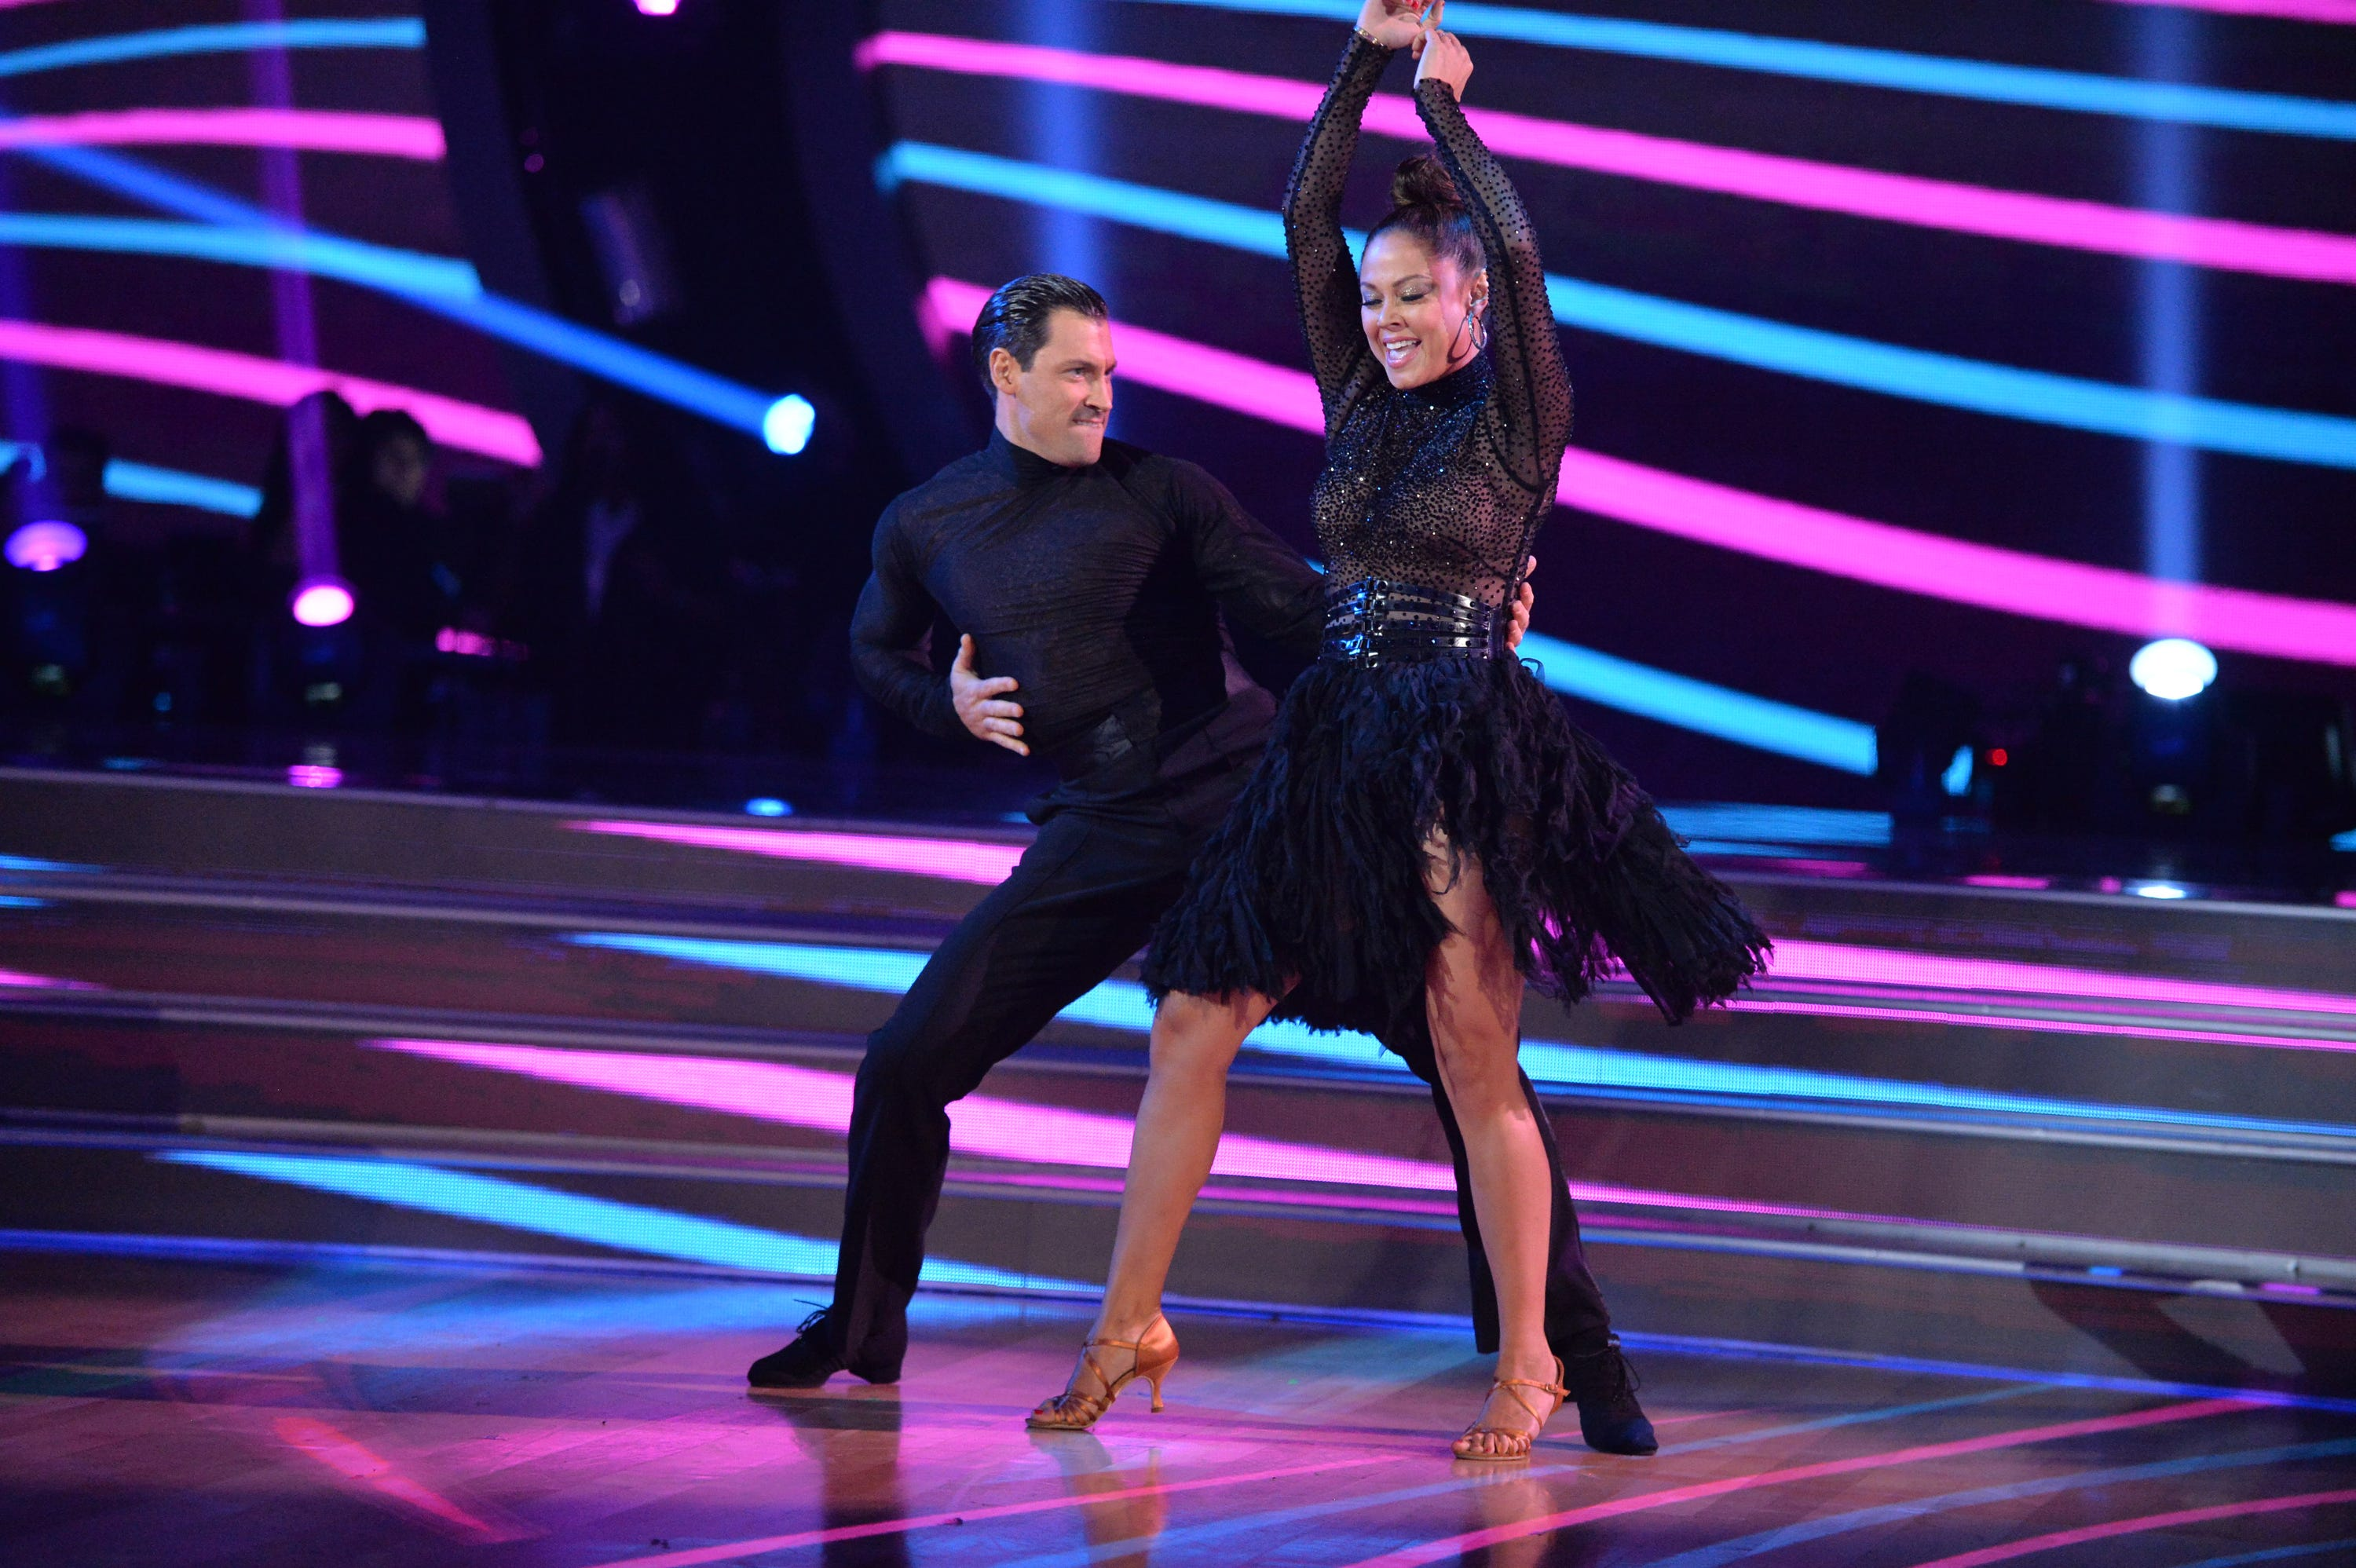 Corbin and karina dancing with the stars dating on general hospital